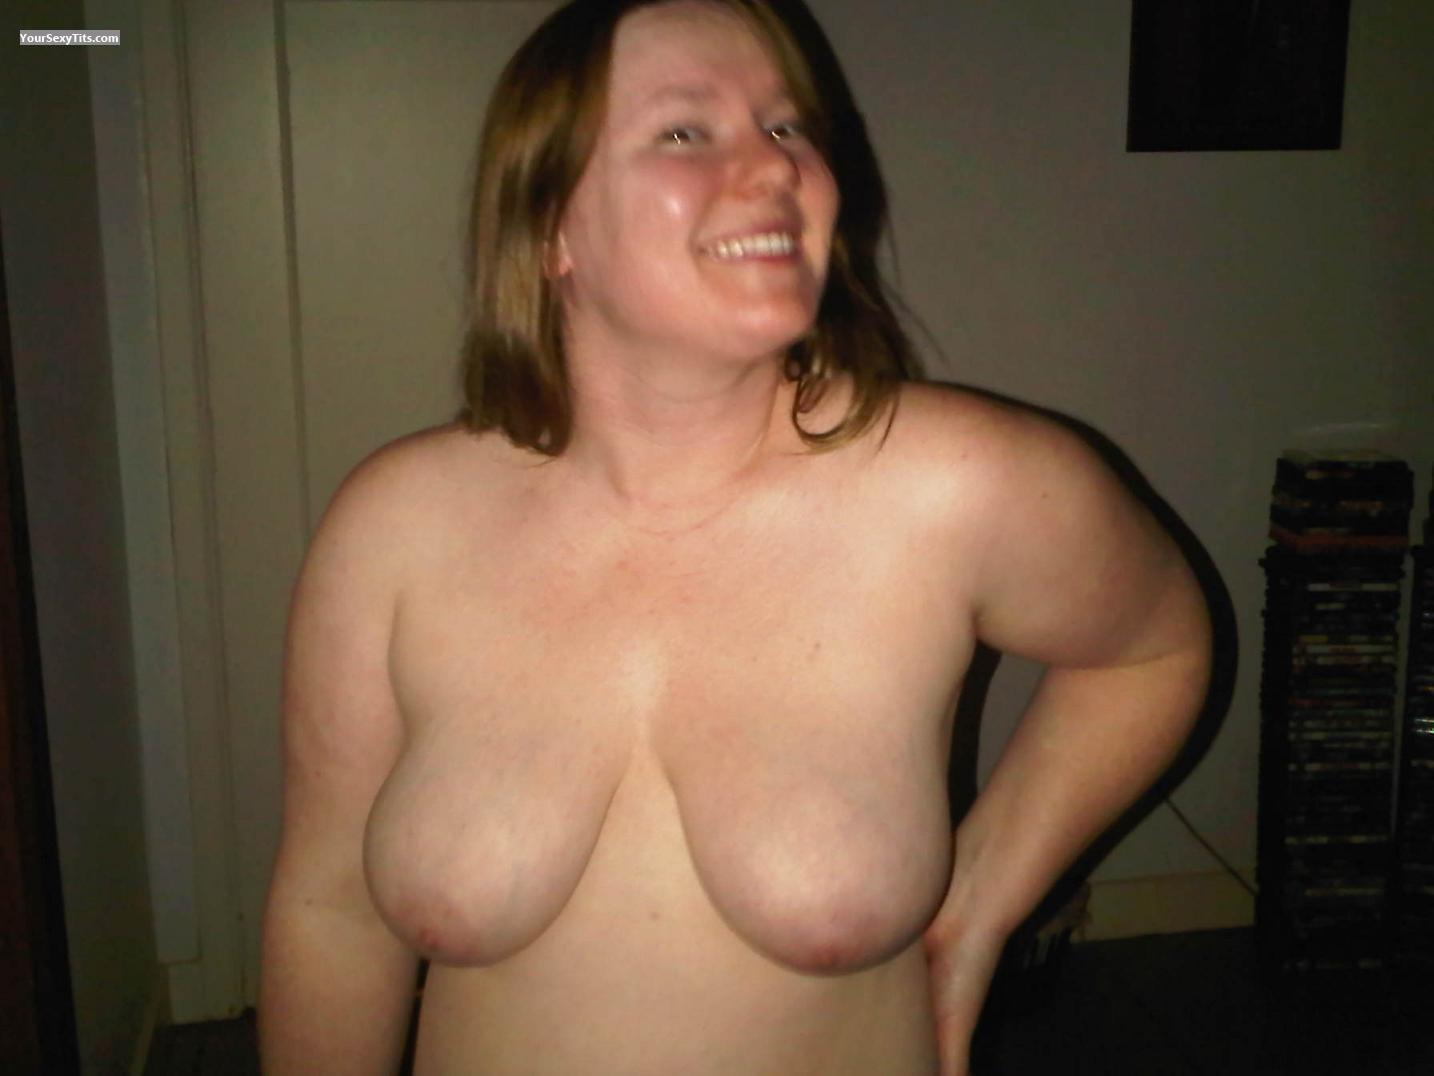 Tit Flash: My Big Tits - Topless Loren from United States